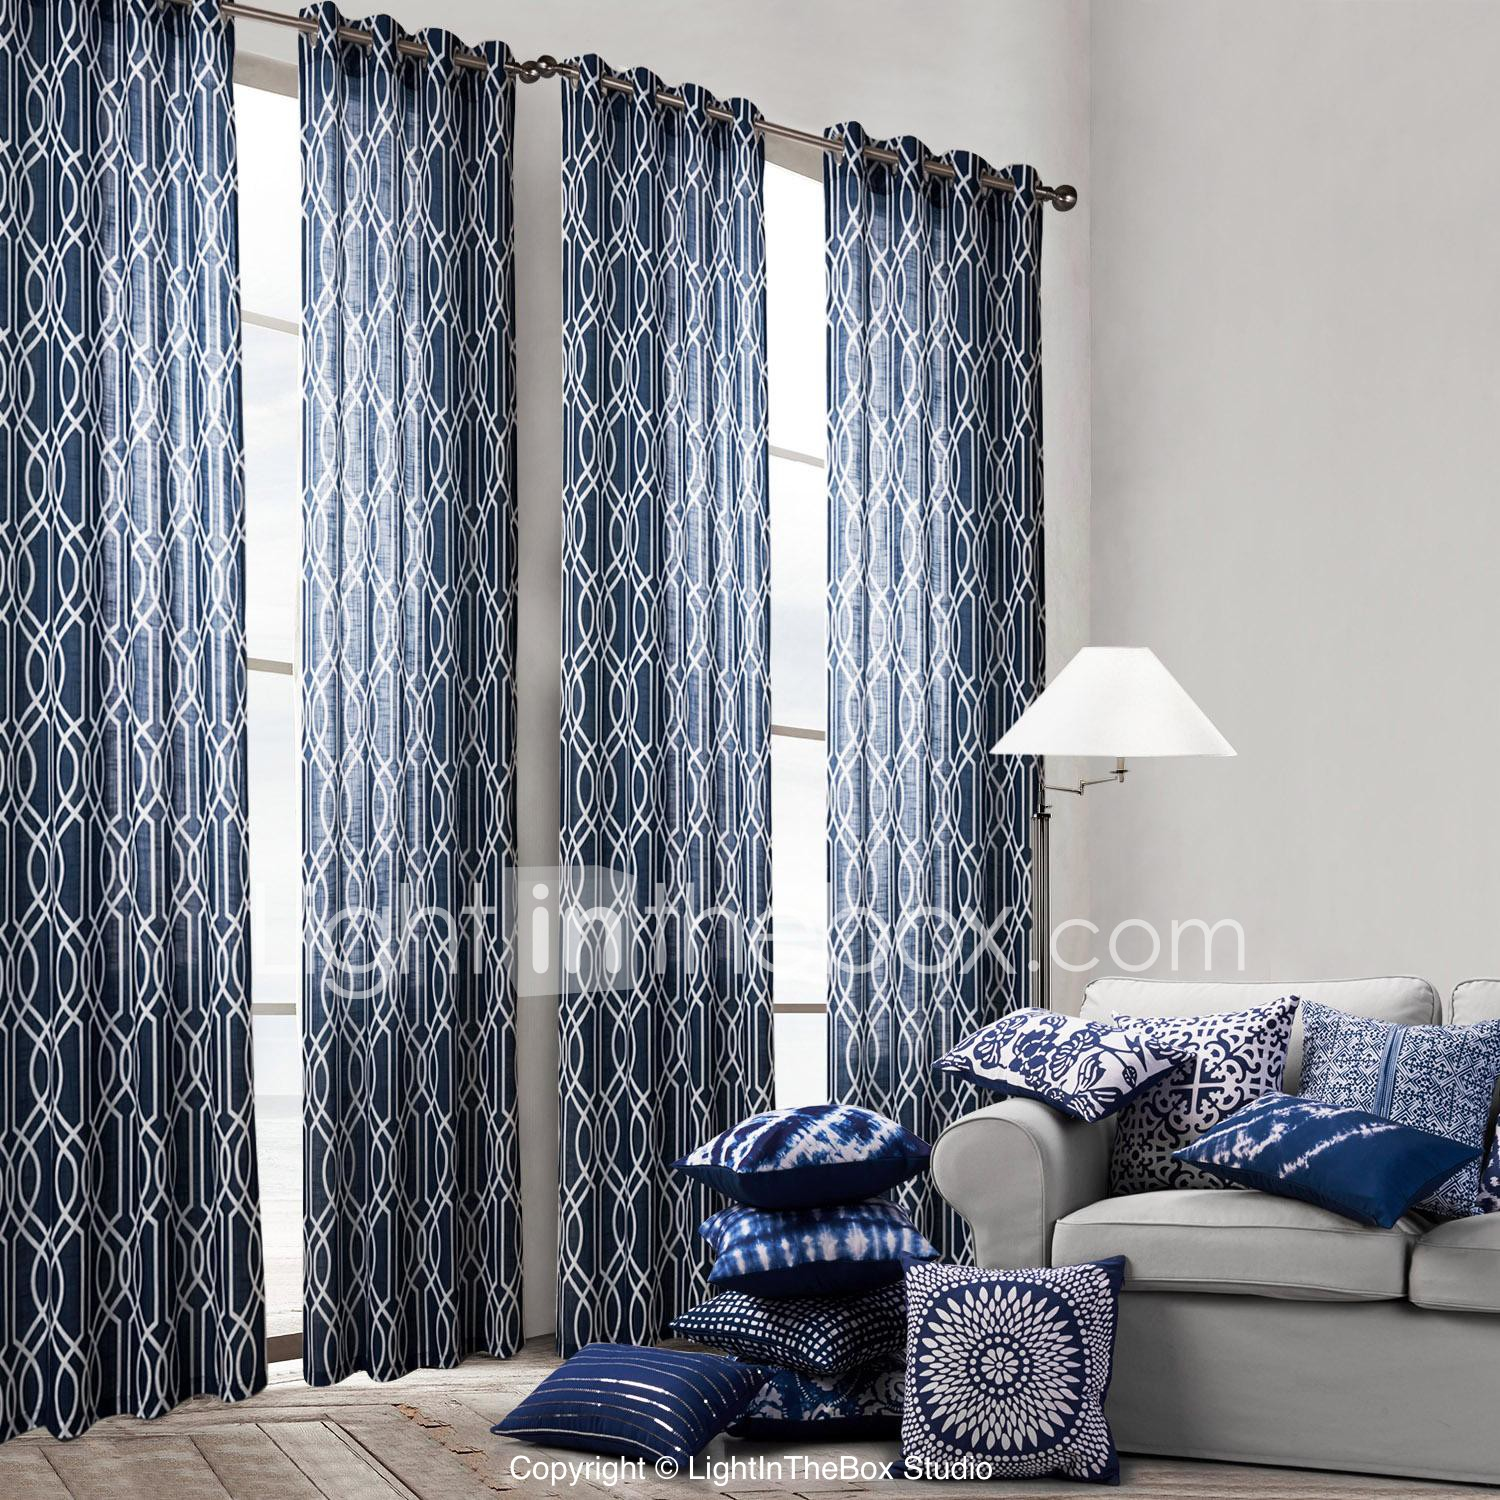 Curtains for bedroom 2016 - One Panel Curtain Modern Bedroom Polyester Material Curtains Drapes Home Decoration For Window 2654391 2017 27 89